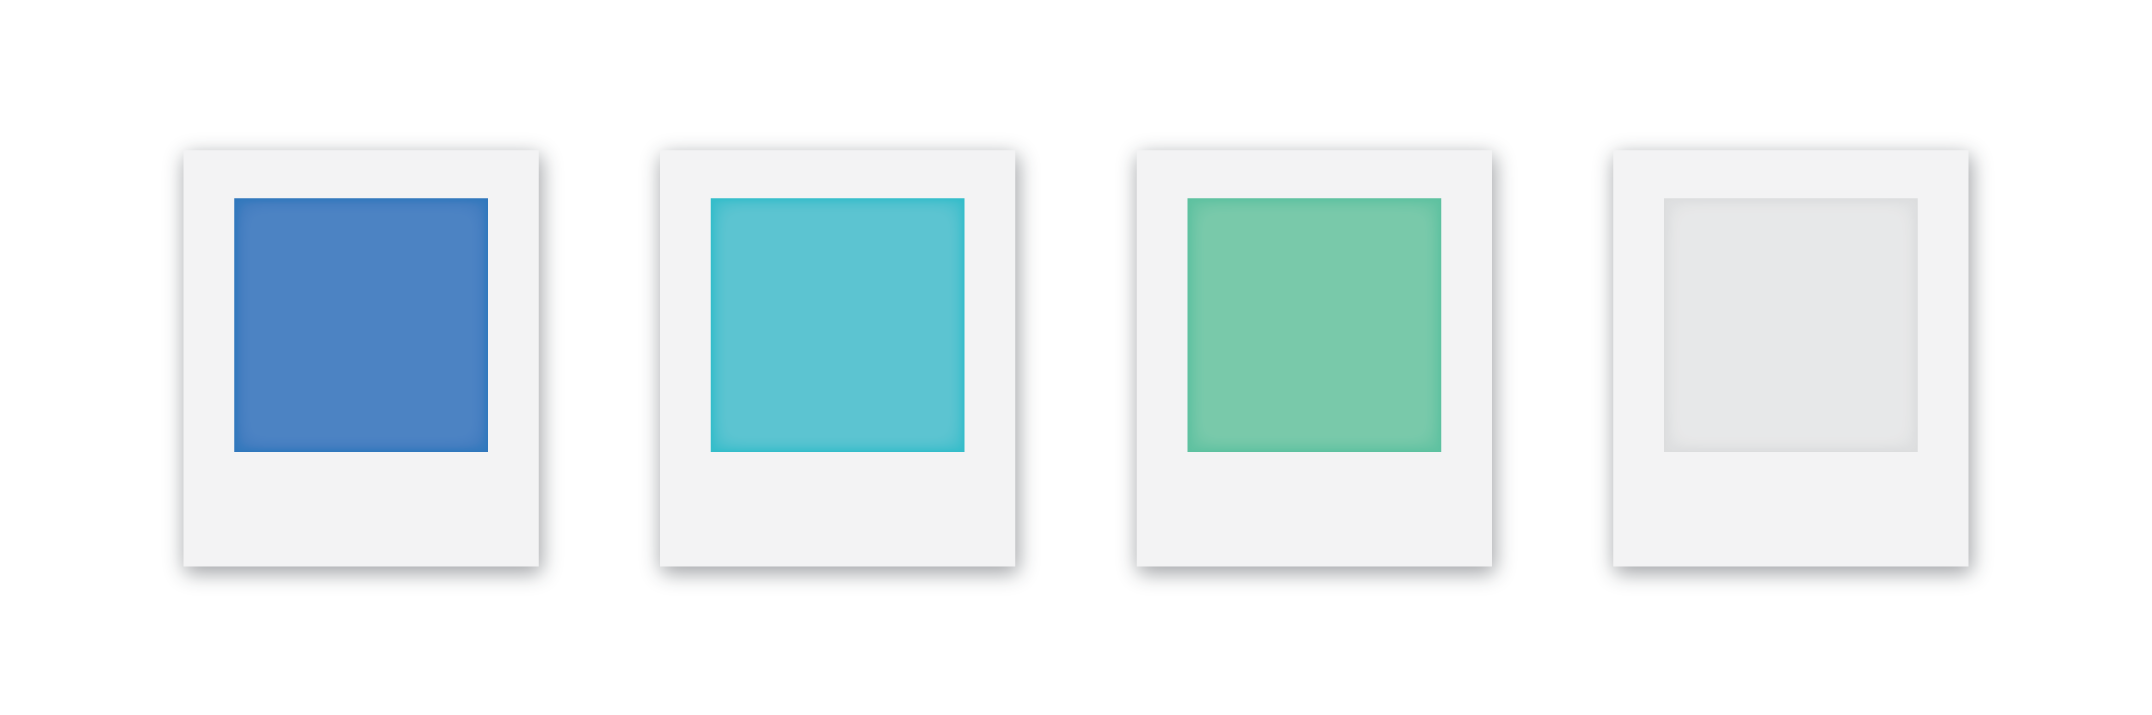 PrivyHealth_swatches.png